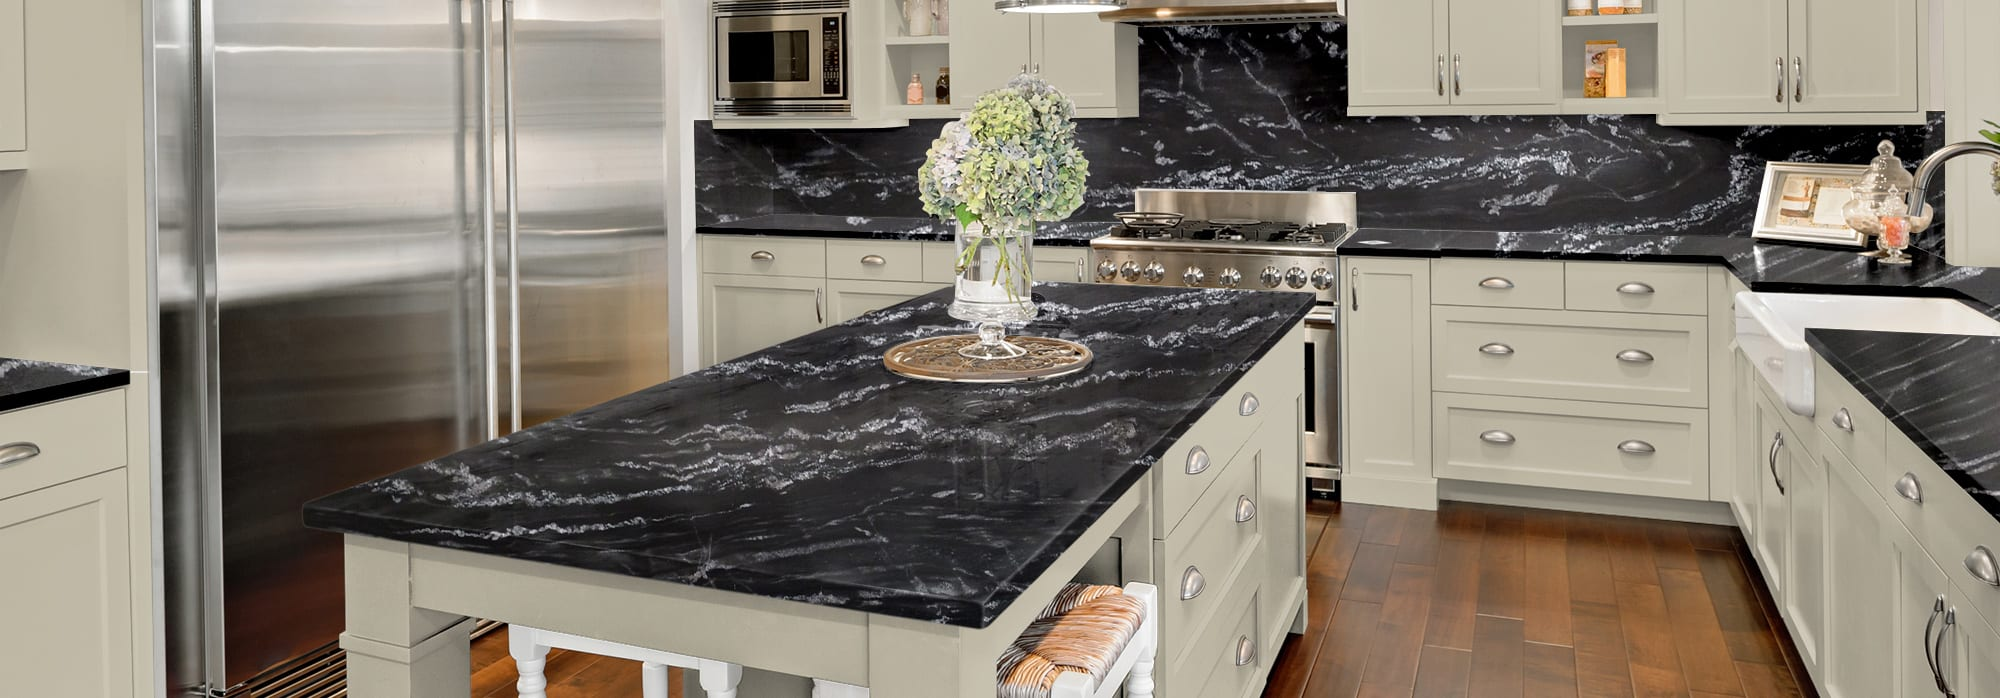 5 Reasons to Install Granite Countertops in Your Kitchen